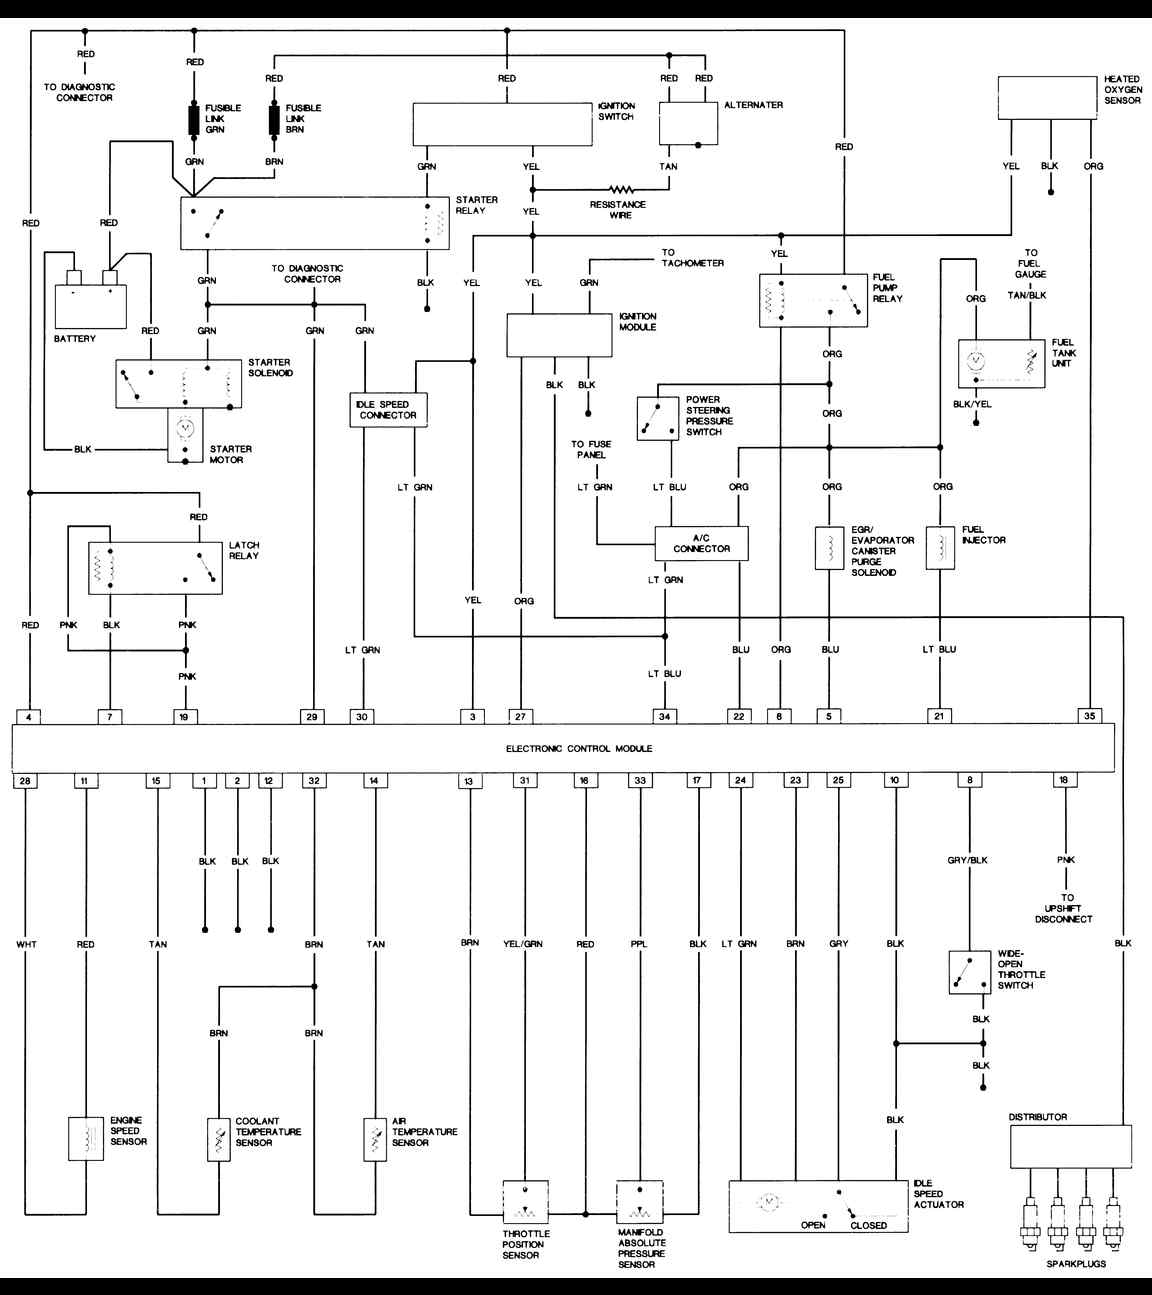 1988 jeep wrangler 2.5L engine 1988 jeep wiring diagrams index freeautomechanic 1988 jeep comanche wiring diagram at mifinder.co